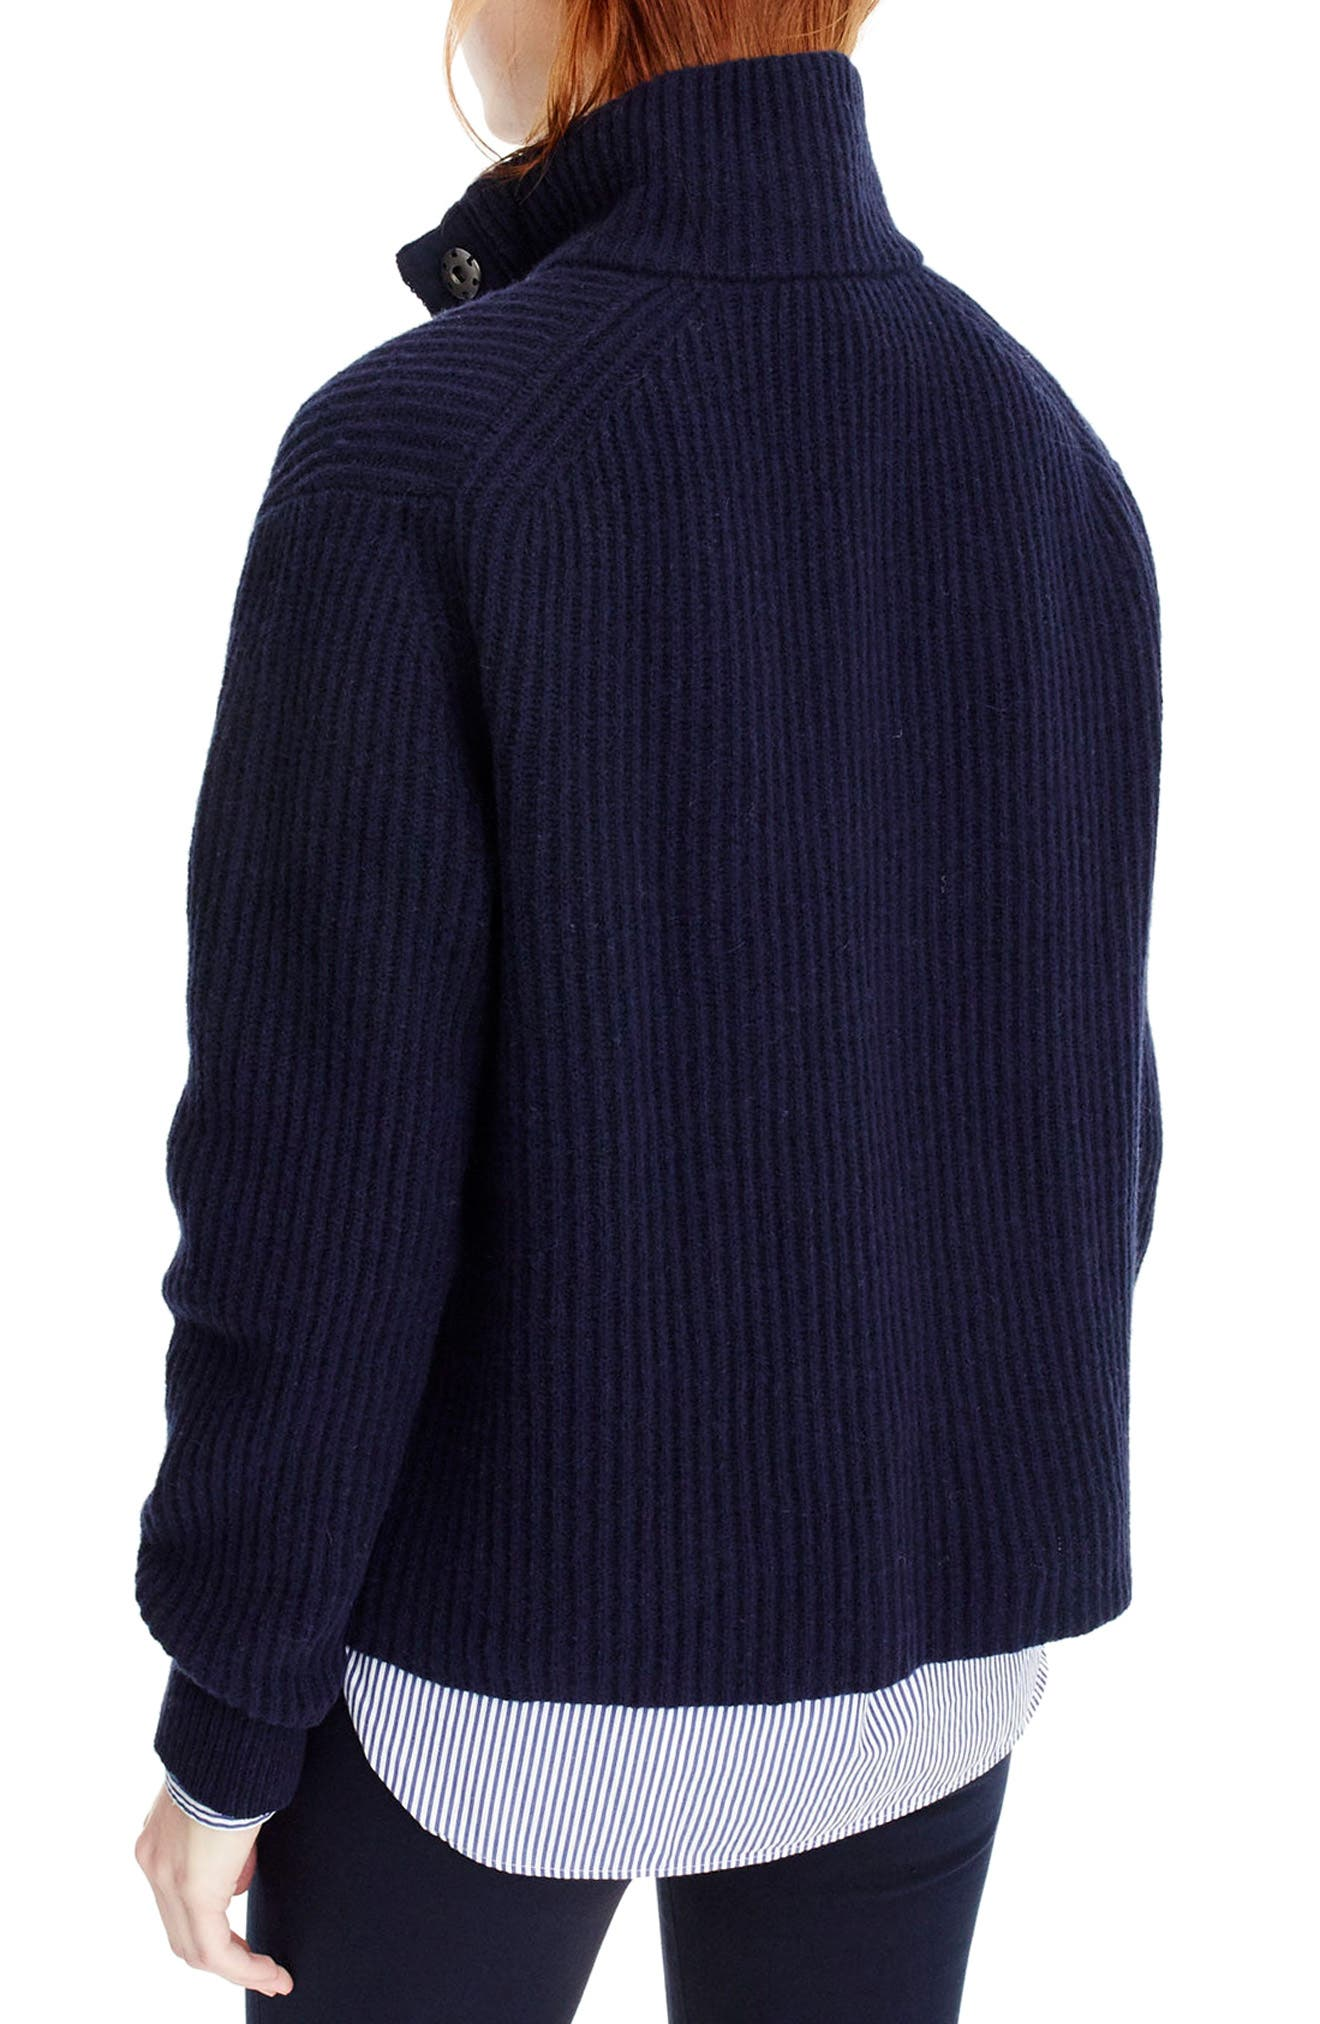 Kay Lambswool Pullover Sweater,                             Alternate thumbnail 3, color,